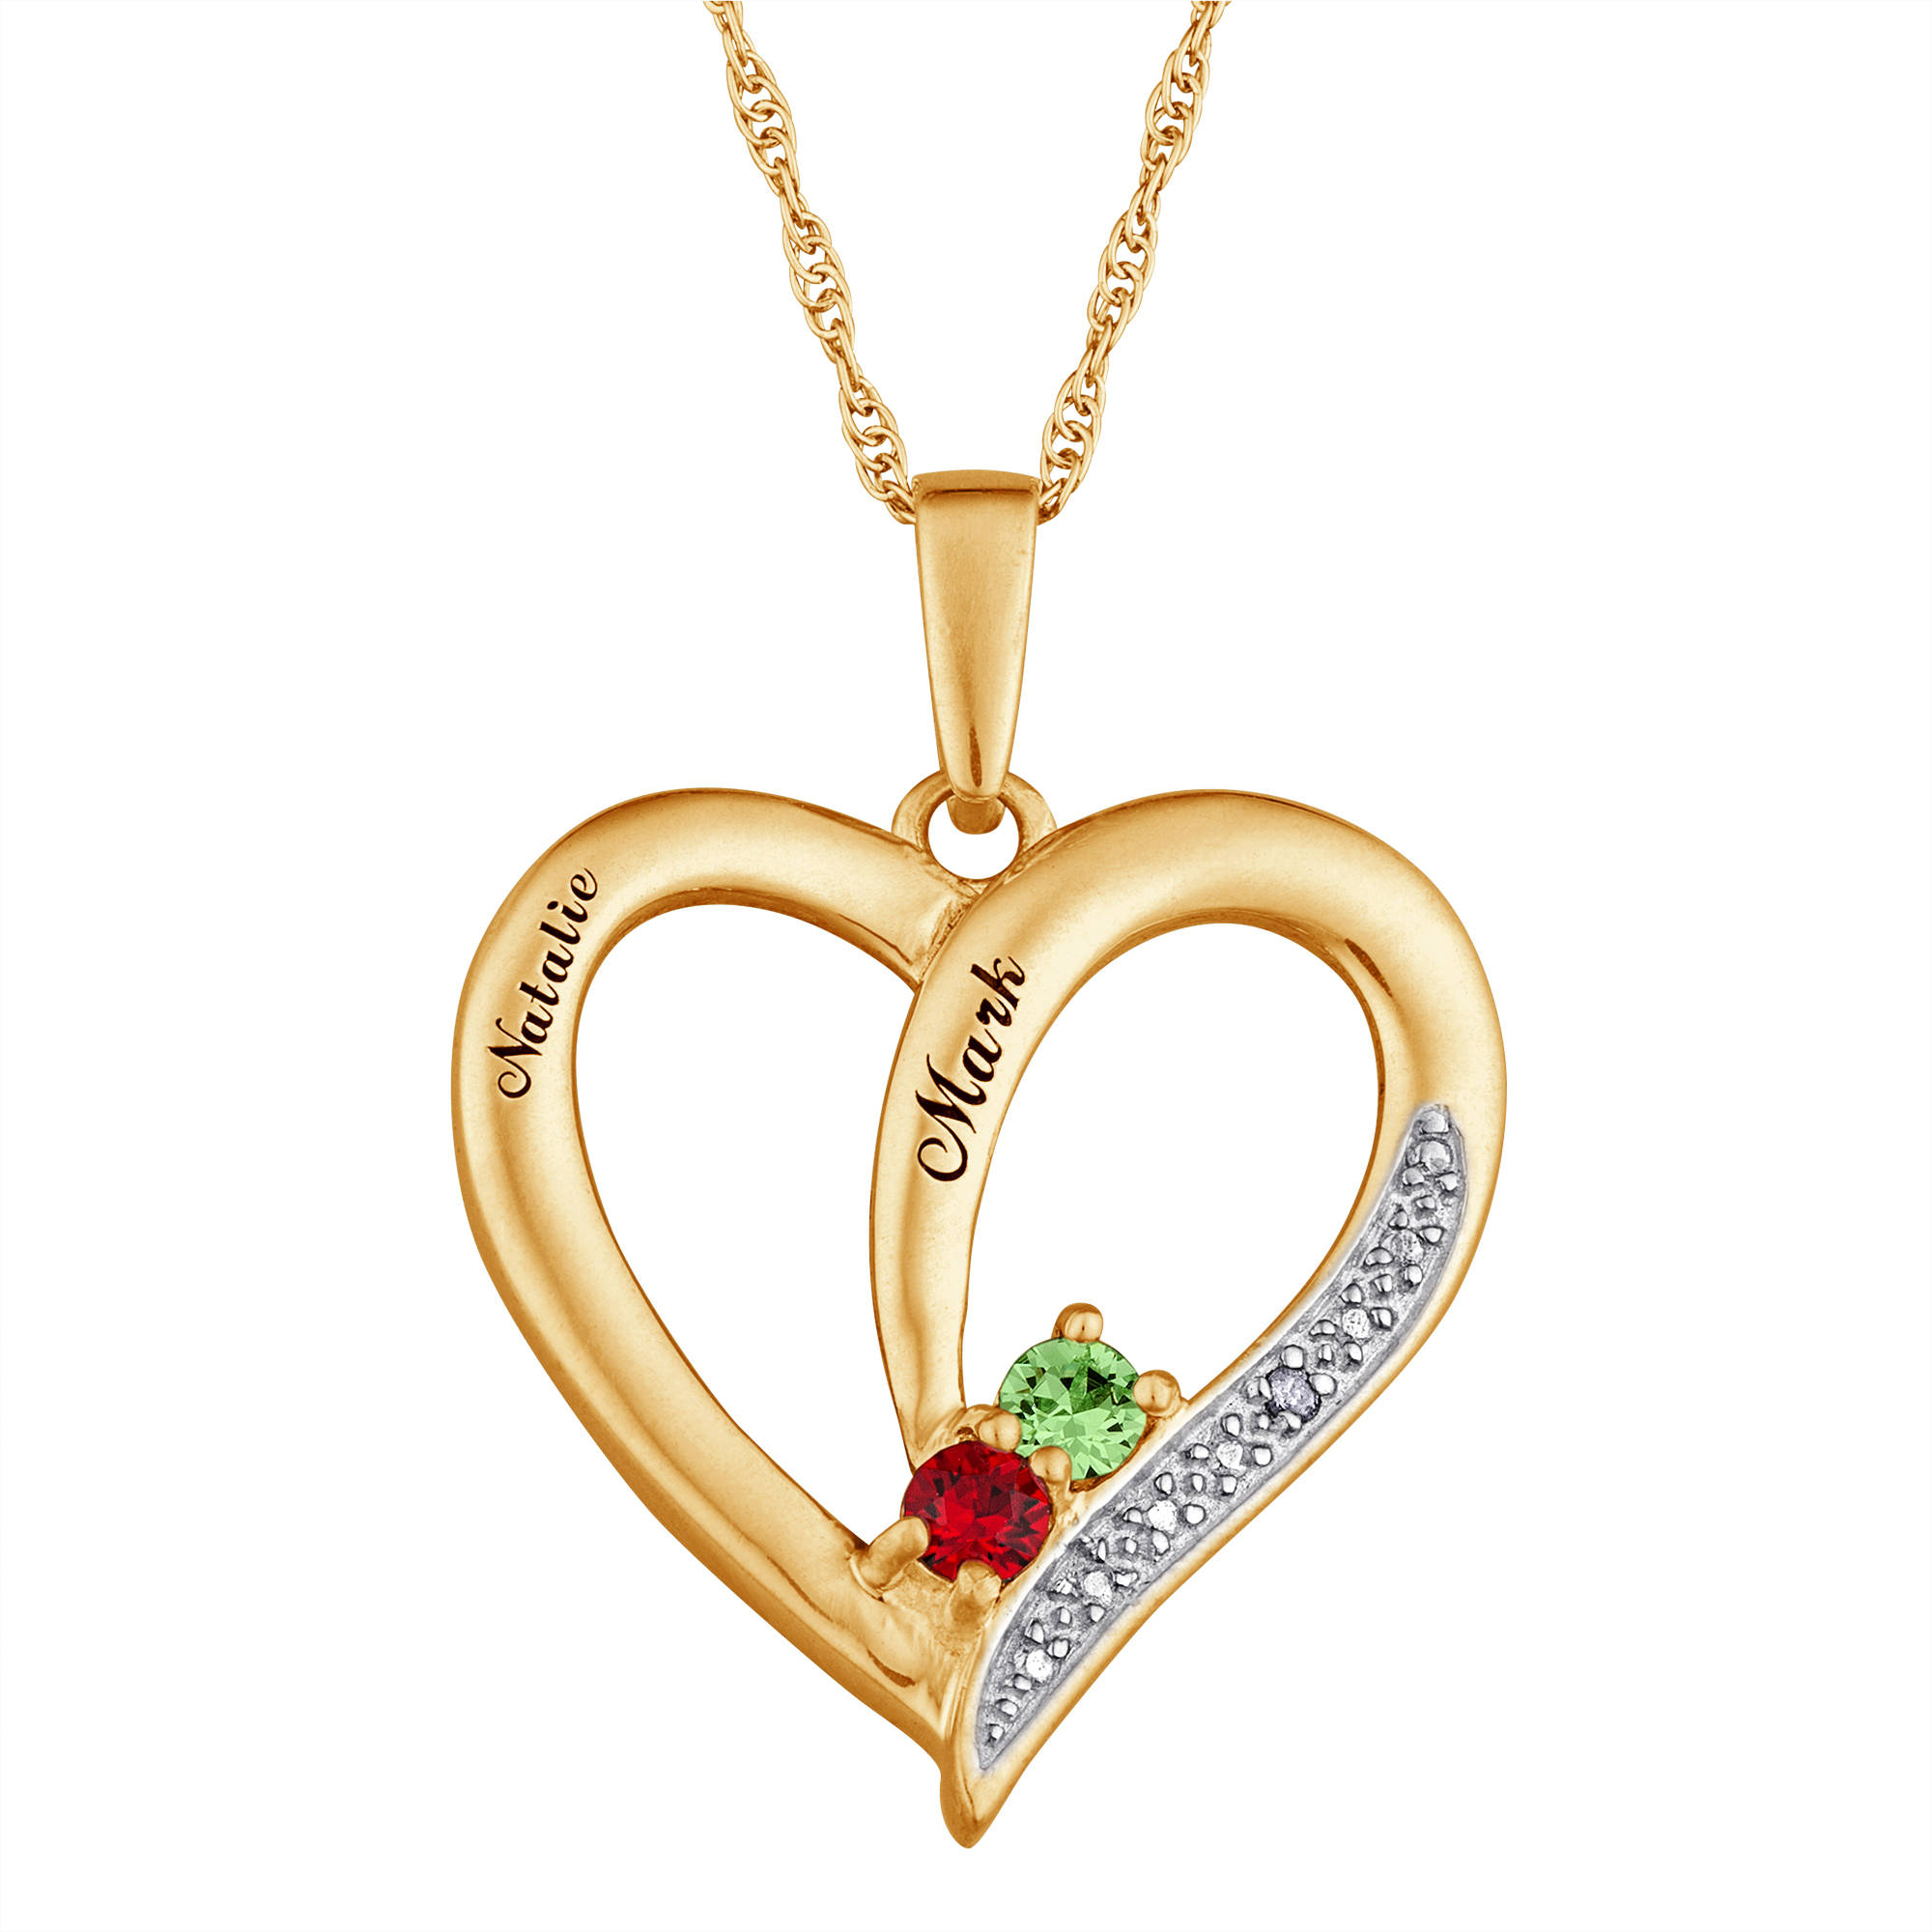 Personalized Couple's Birthstone with Diamond 10kt Gold Heart Pendant, 20""